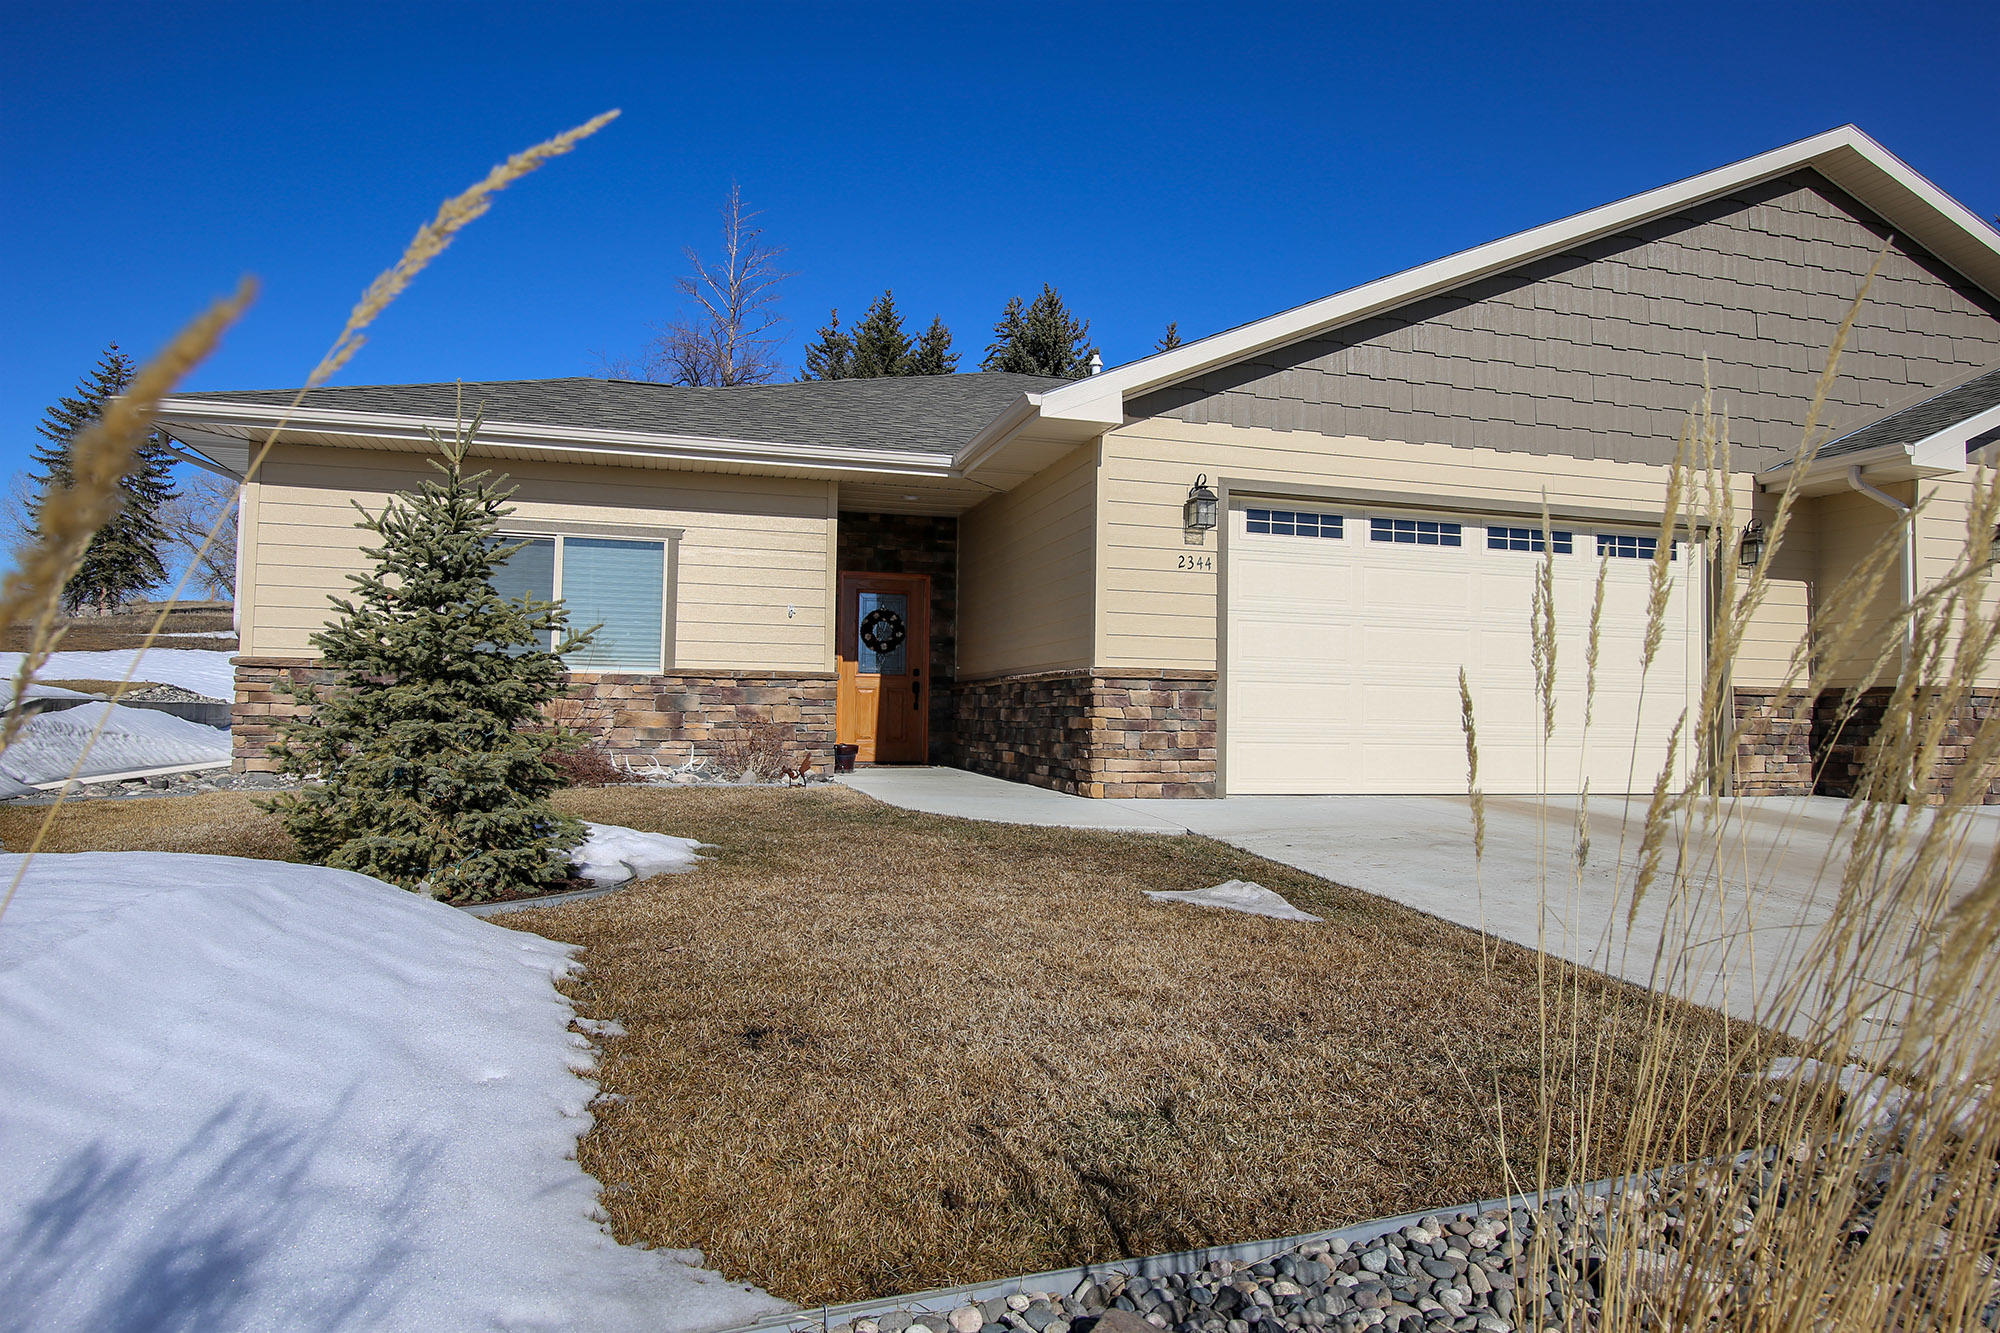 2344 Aspen Grove Drive, Sheridan, Wyoming 82801, 2 Bedrooms Bedrooms, ,2 BathroomsBathrooms,Residential,For Sale,Aspen Grove,19-232